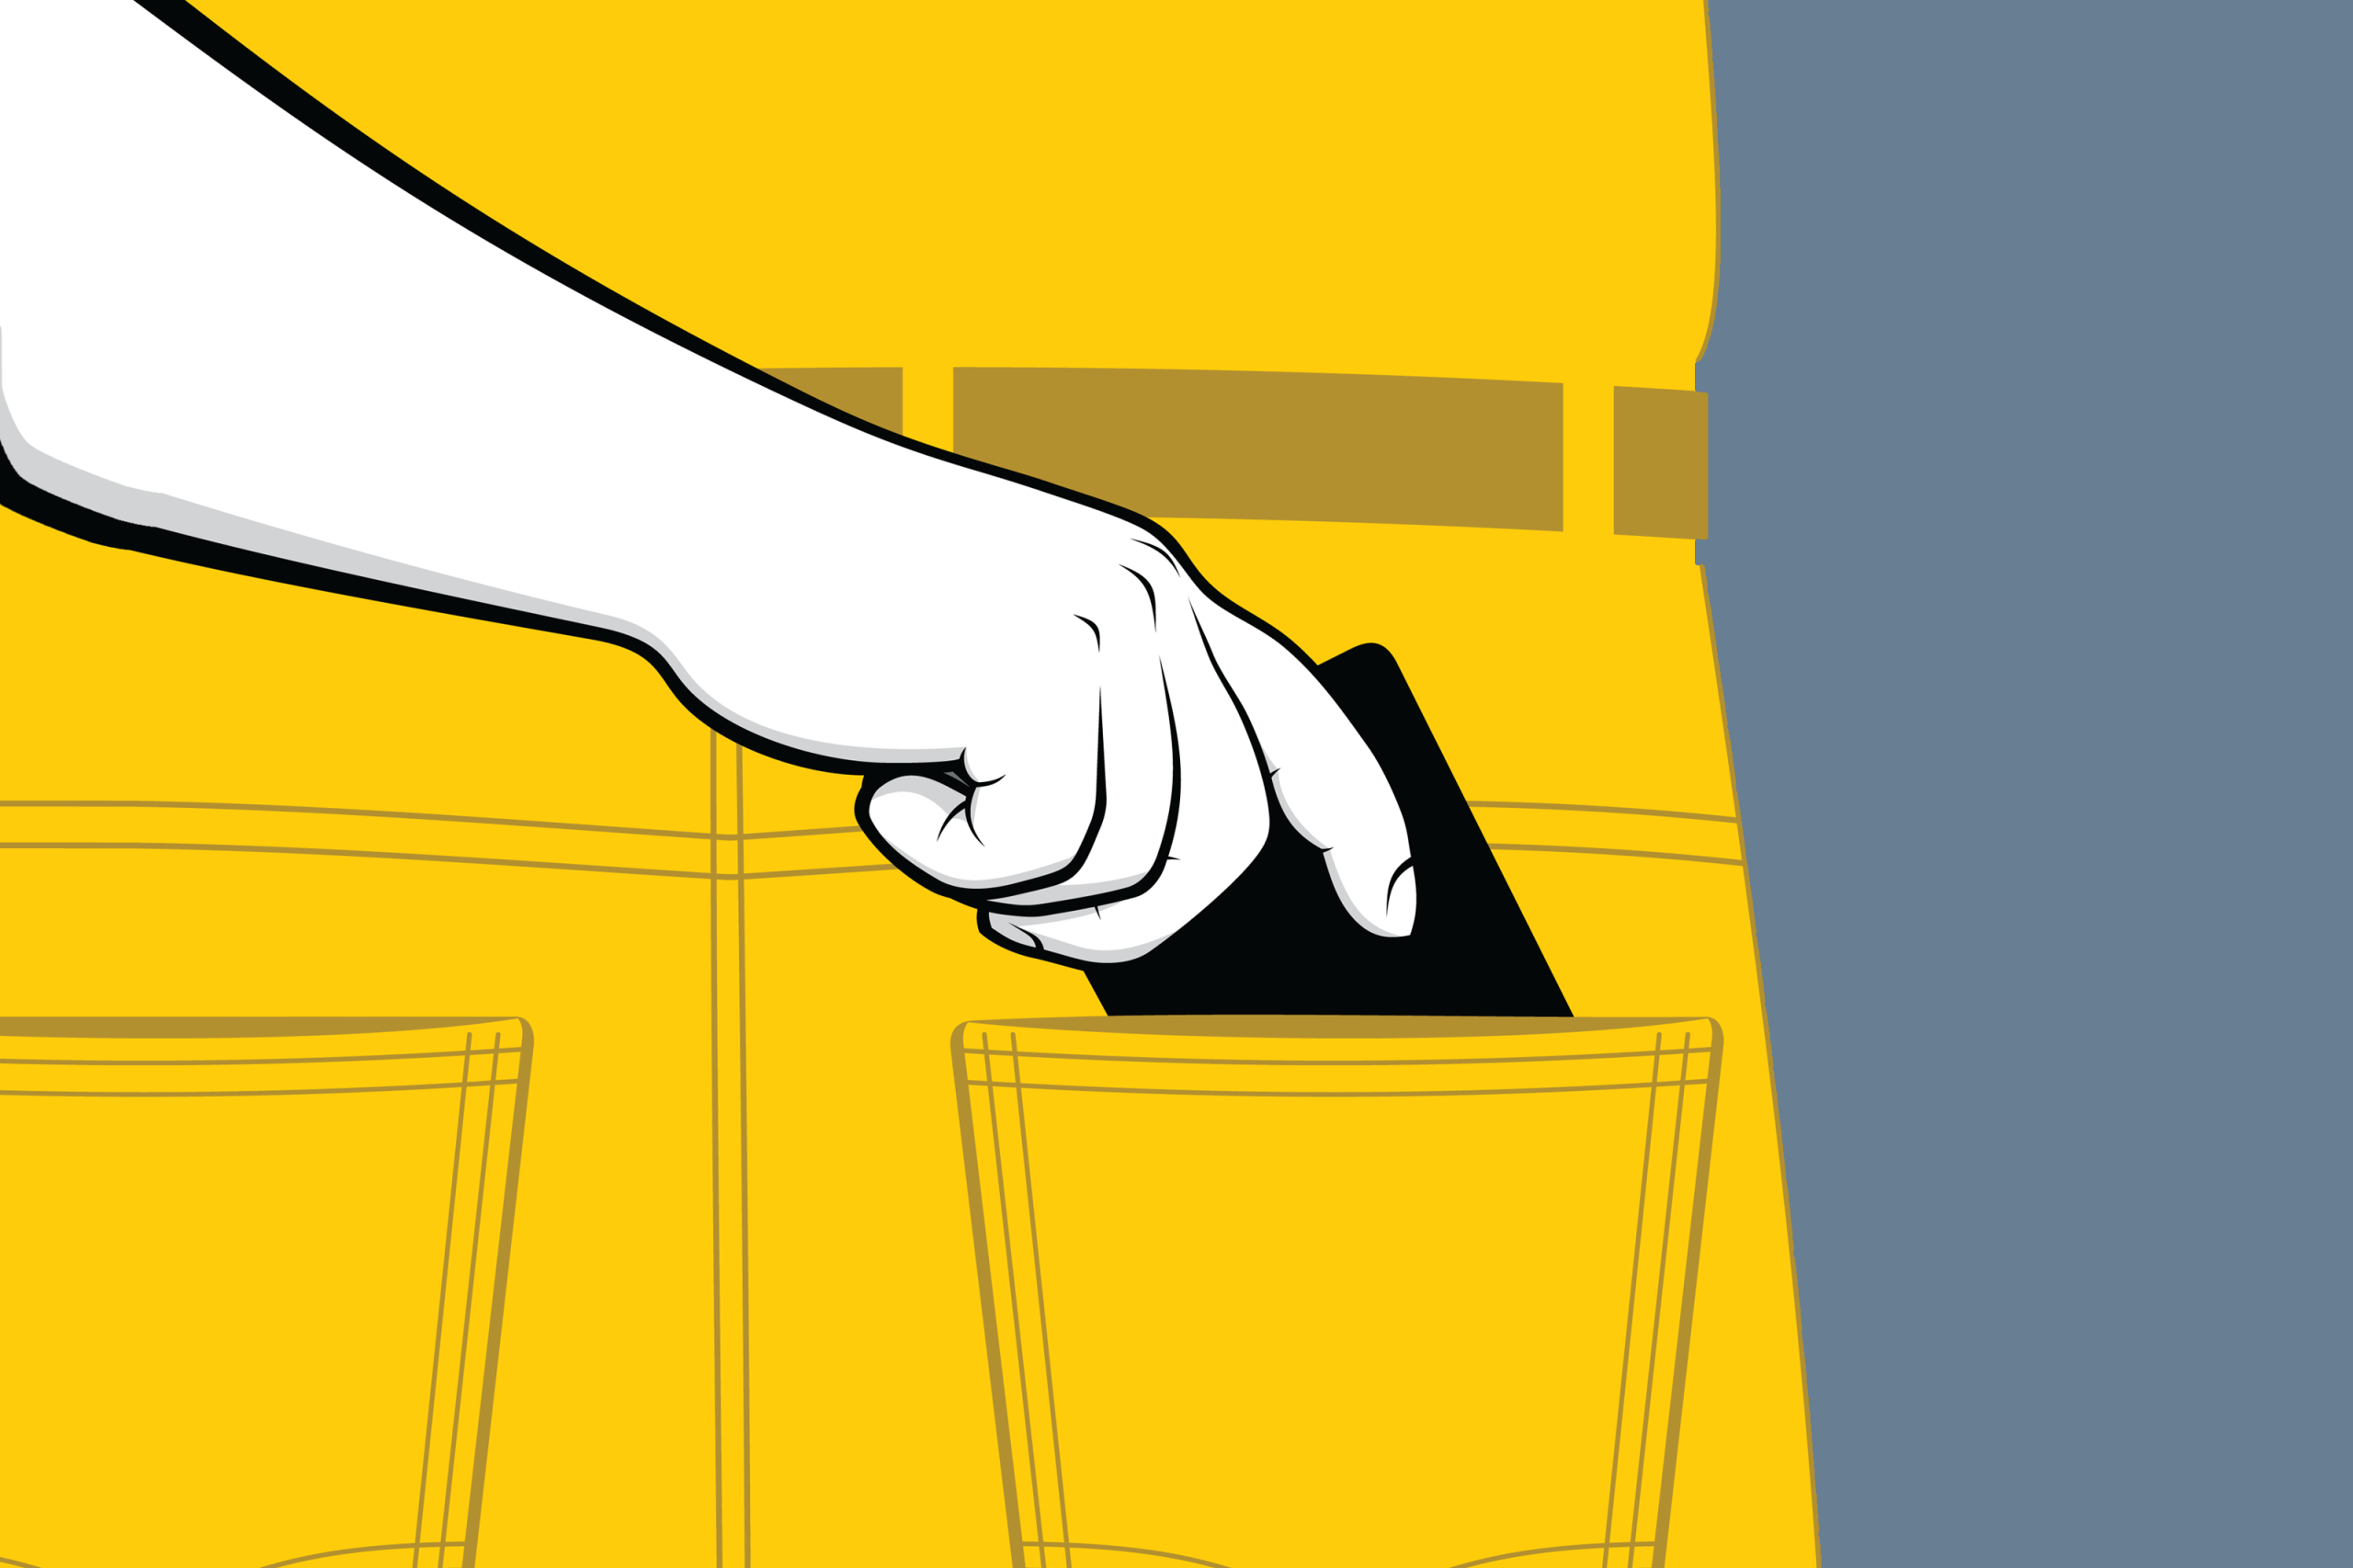 Illustration of someone pickpocketing a homeowner